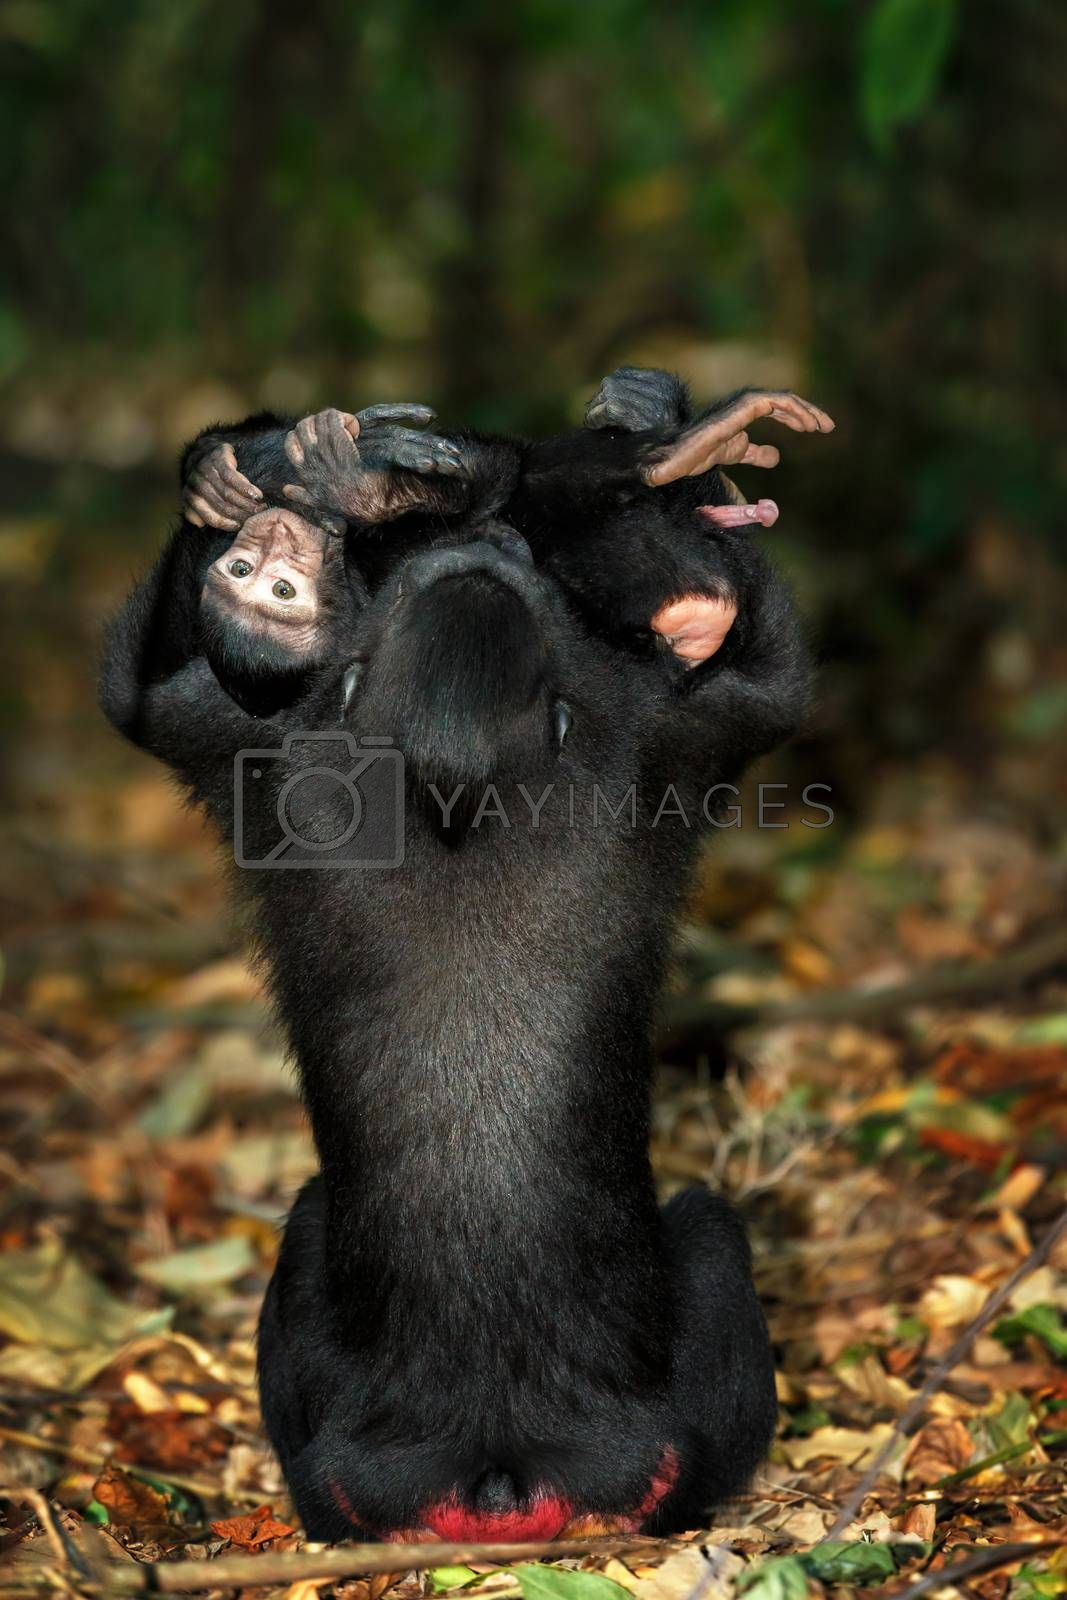 Young baby with mother, endemic monkey Celebes crested macaque known as black monkey (Macaca nigra) in rainforest, Tangkoko Nature Reserve in North Sulawesi, Indonesia wildlife